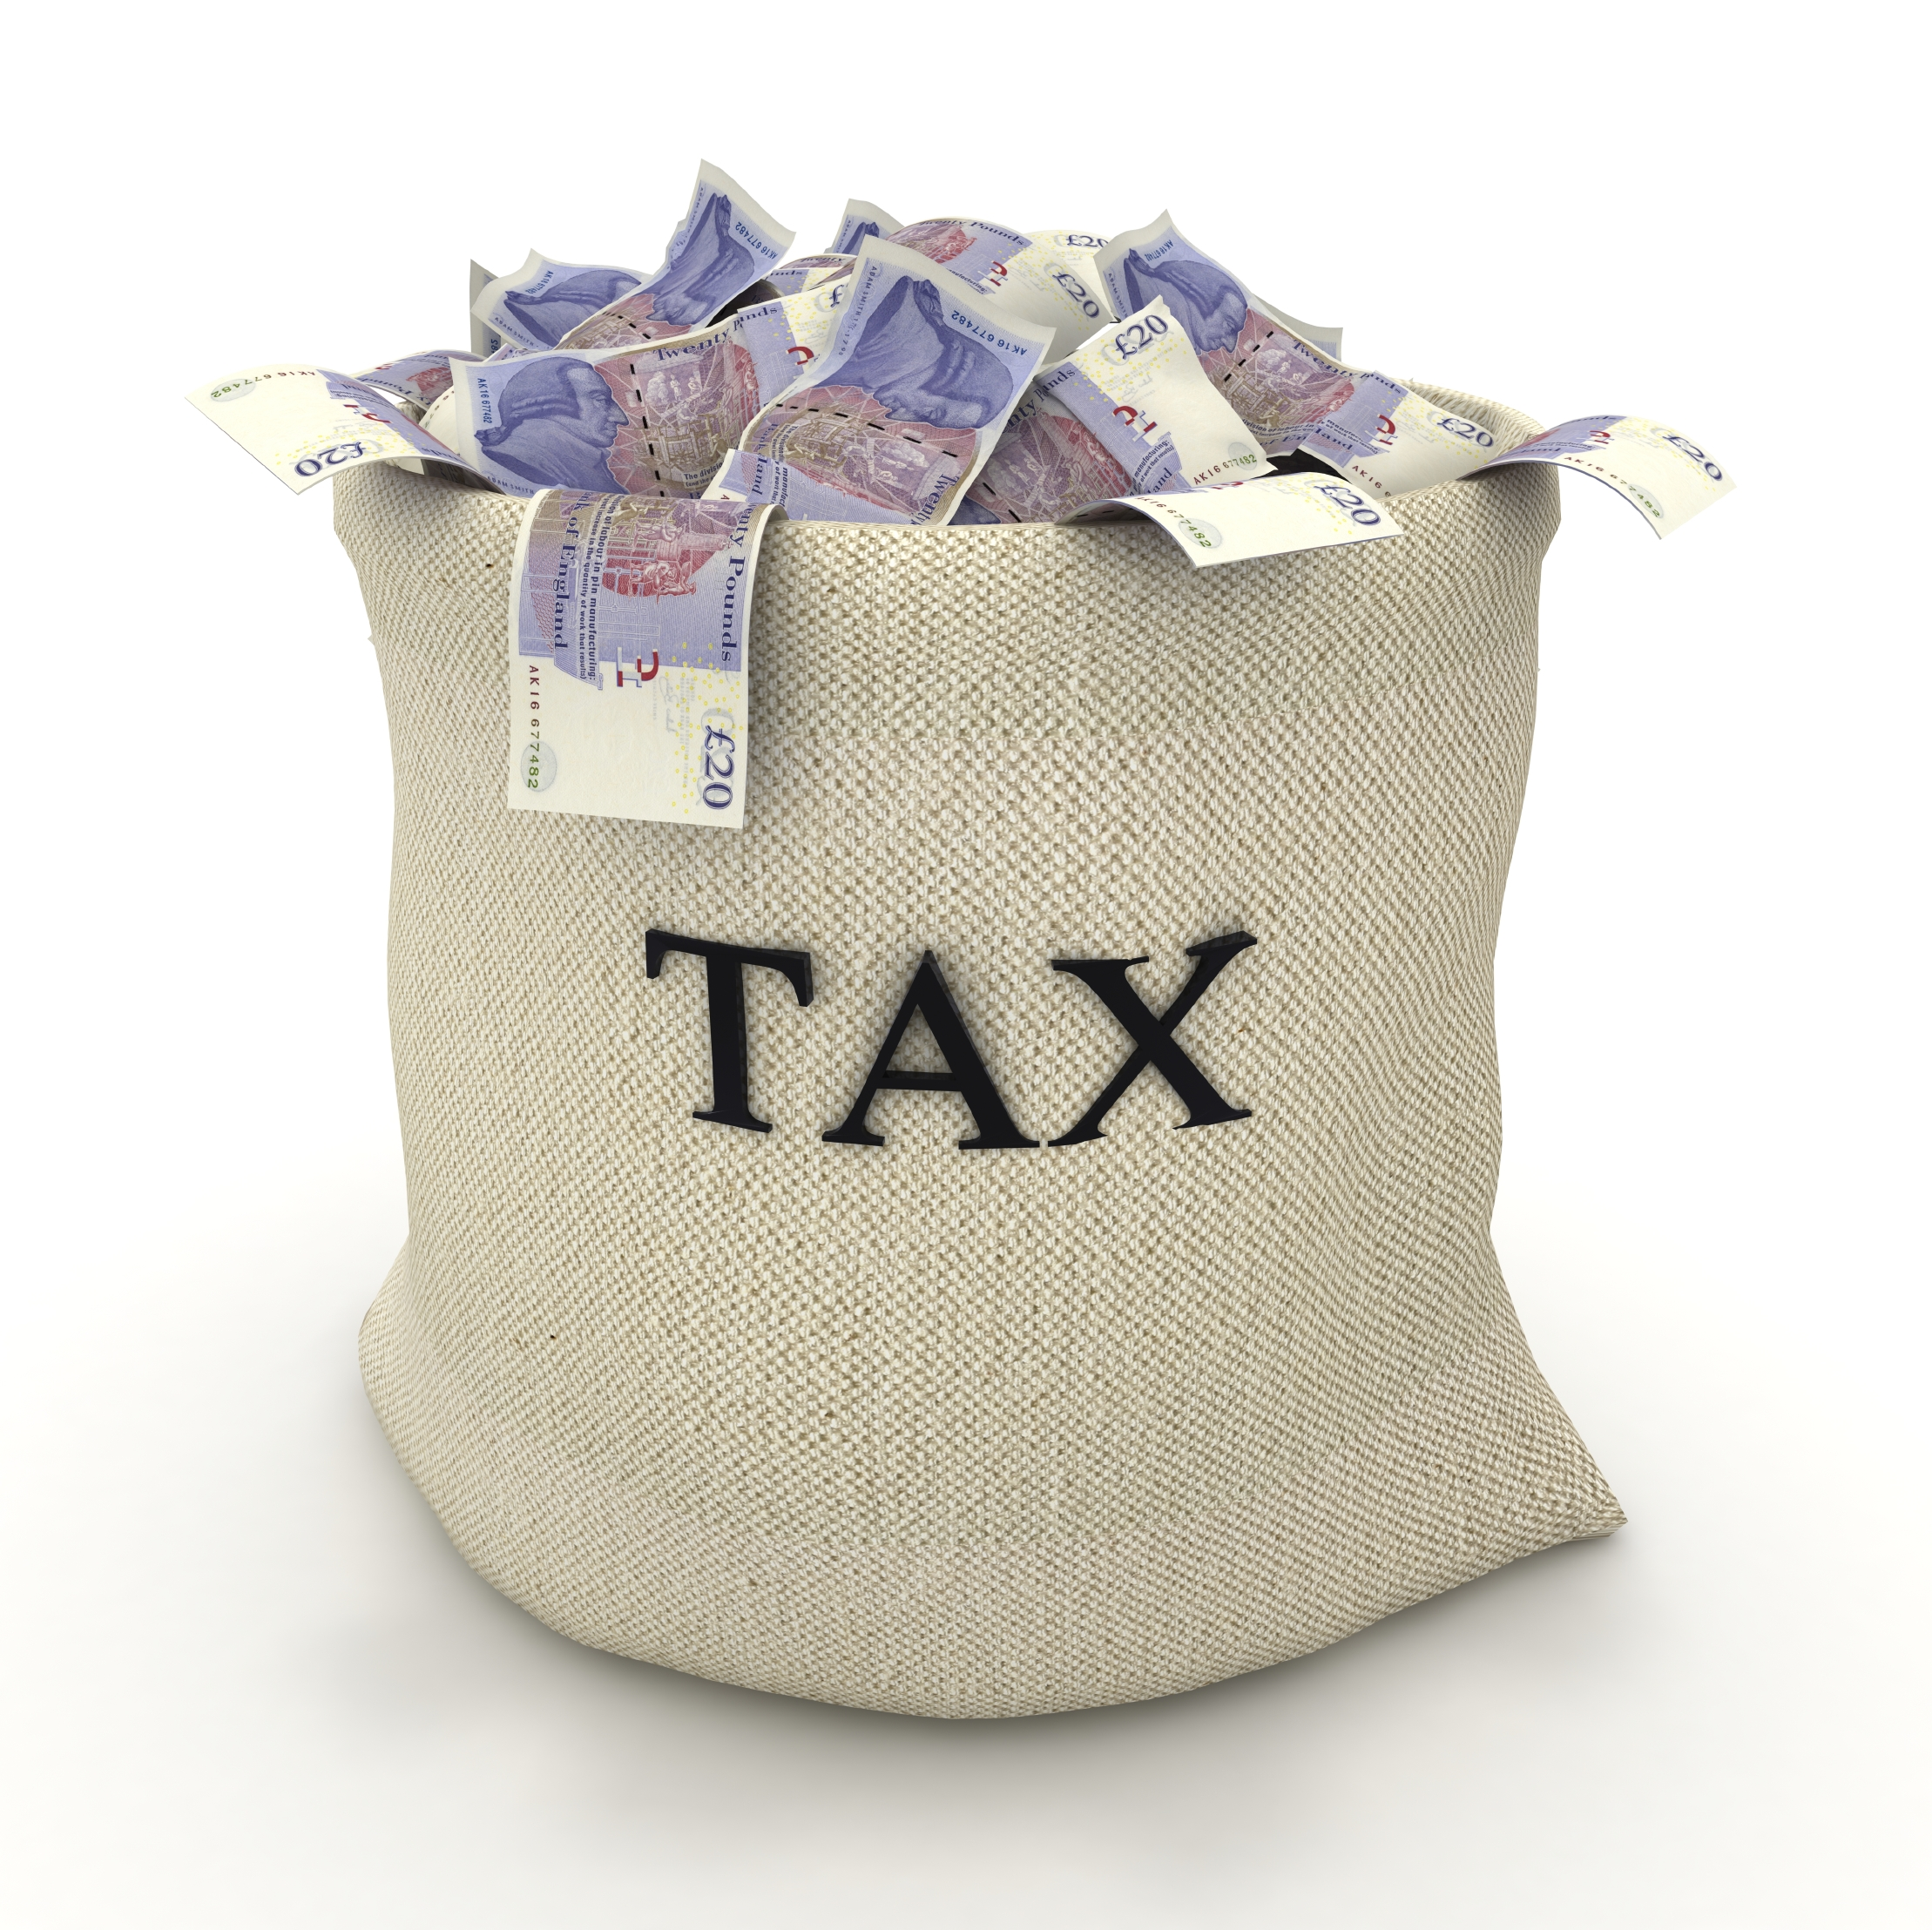 UK Capital Gains Tax Central Housing Group